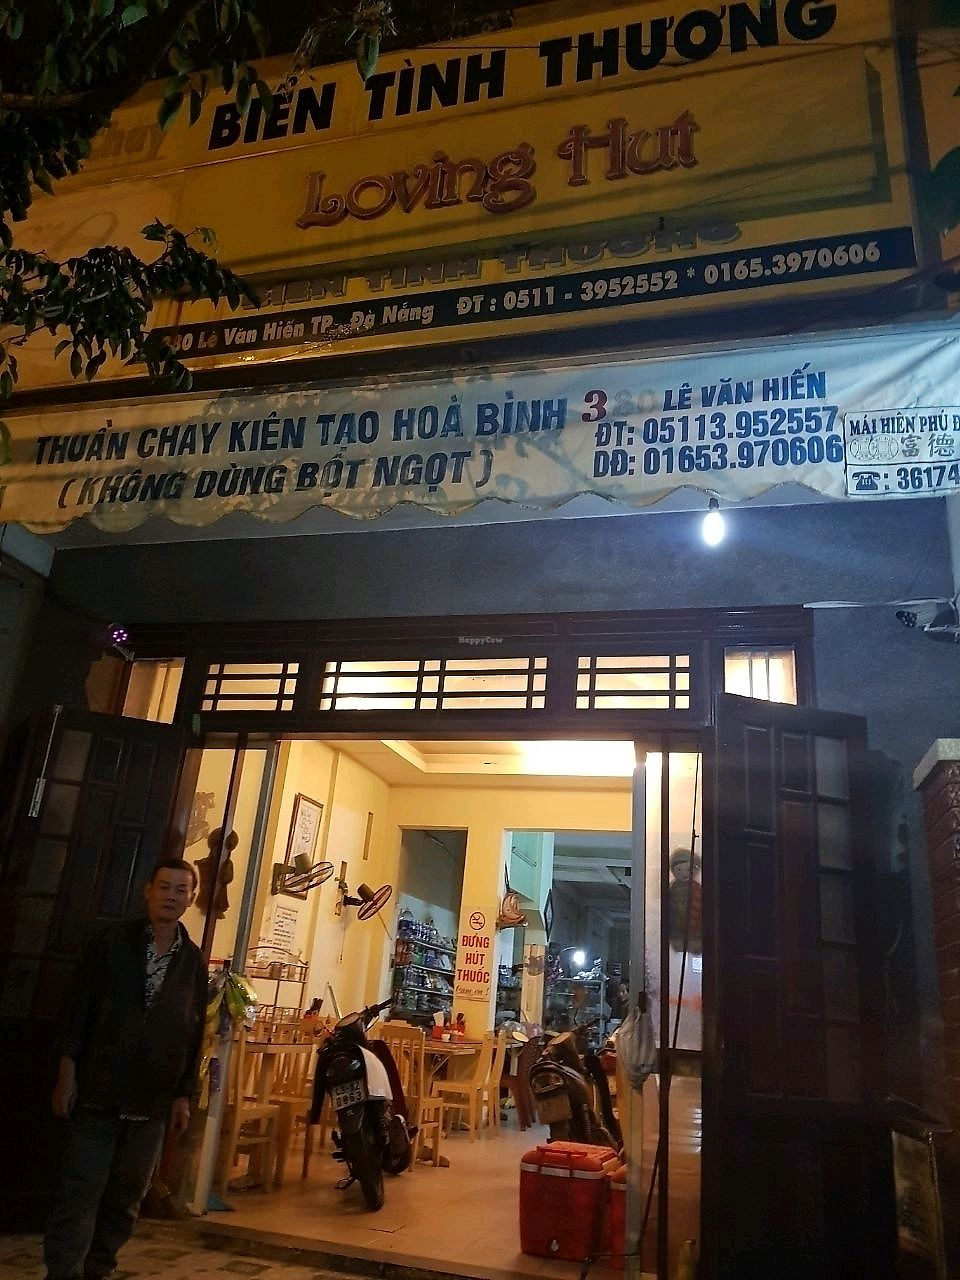 """Photo of Loving Hut - Bien Tinh Thuong  by <a href=""""/members/profile/EnricoVegan"""">EnricoVegan</a> <br/>loving hut store front with owner <br/> December 21, 2017  - <a href='/contact/abuse/image/36503/337686'>Report</a>"""